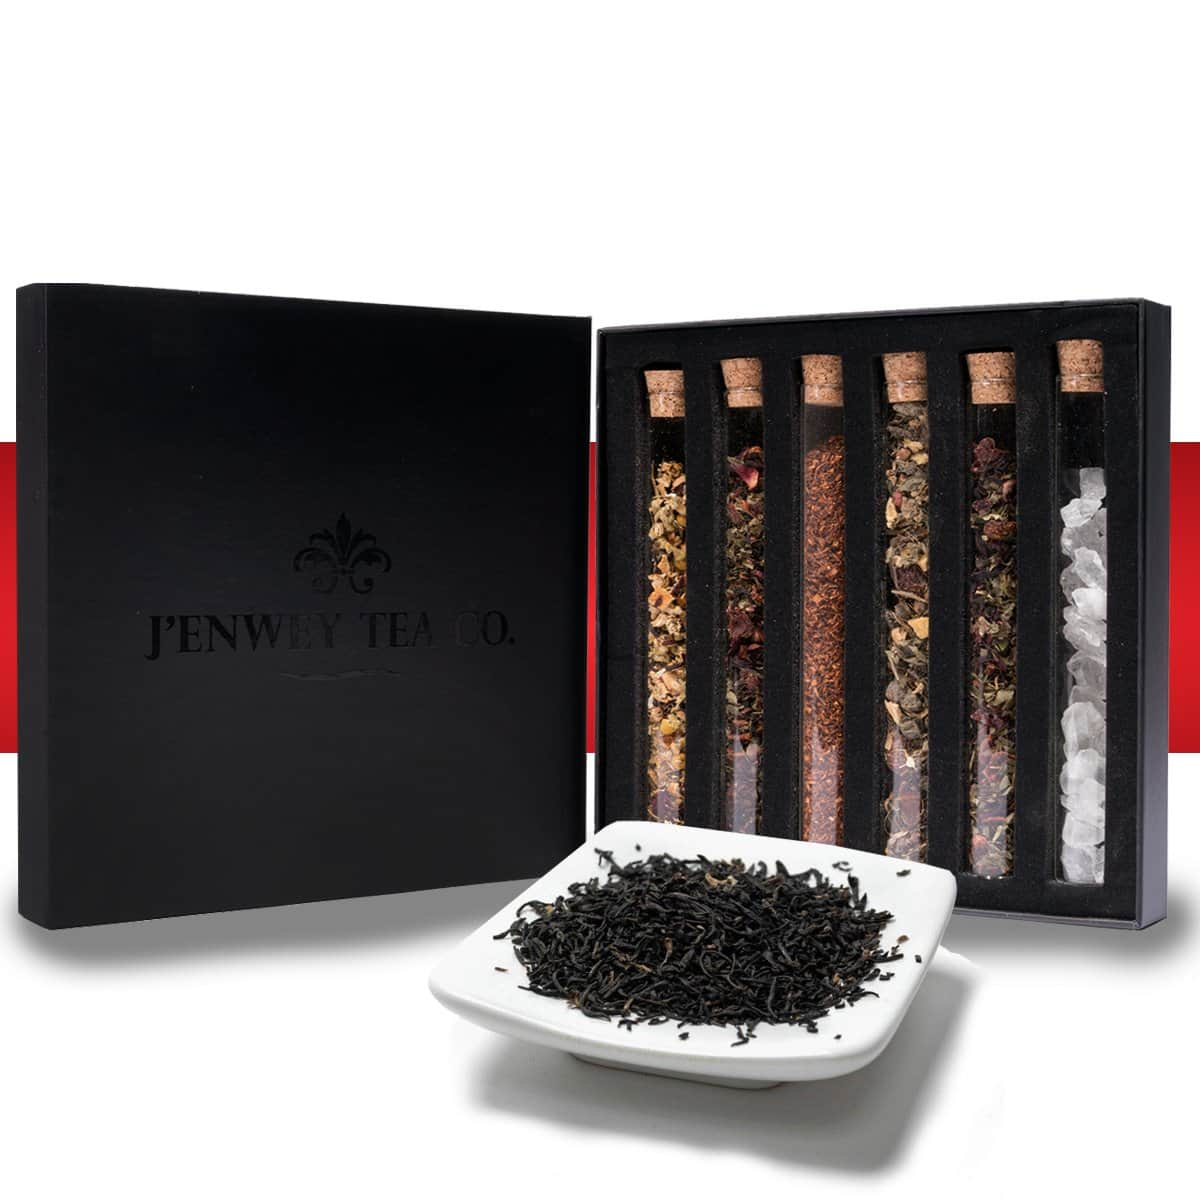 Boutique Tea Collection Box Sets - Boutique Jenwey Tea blend